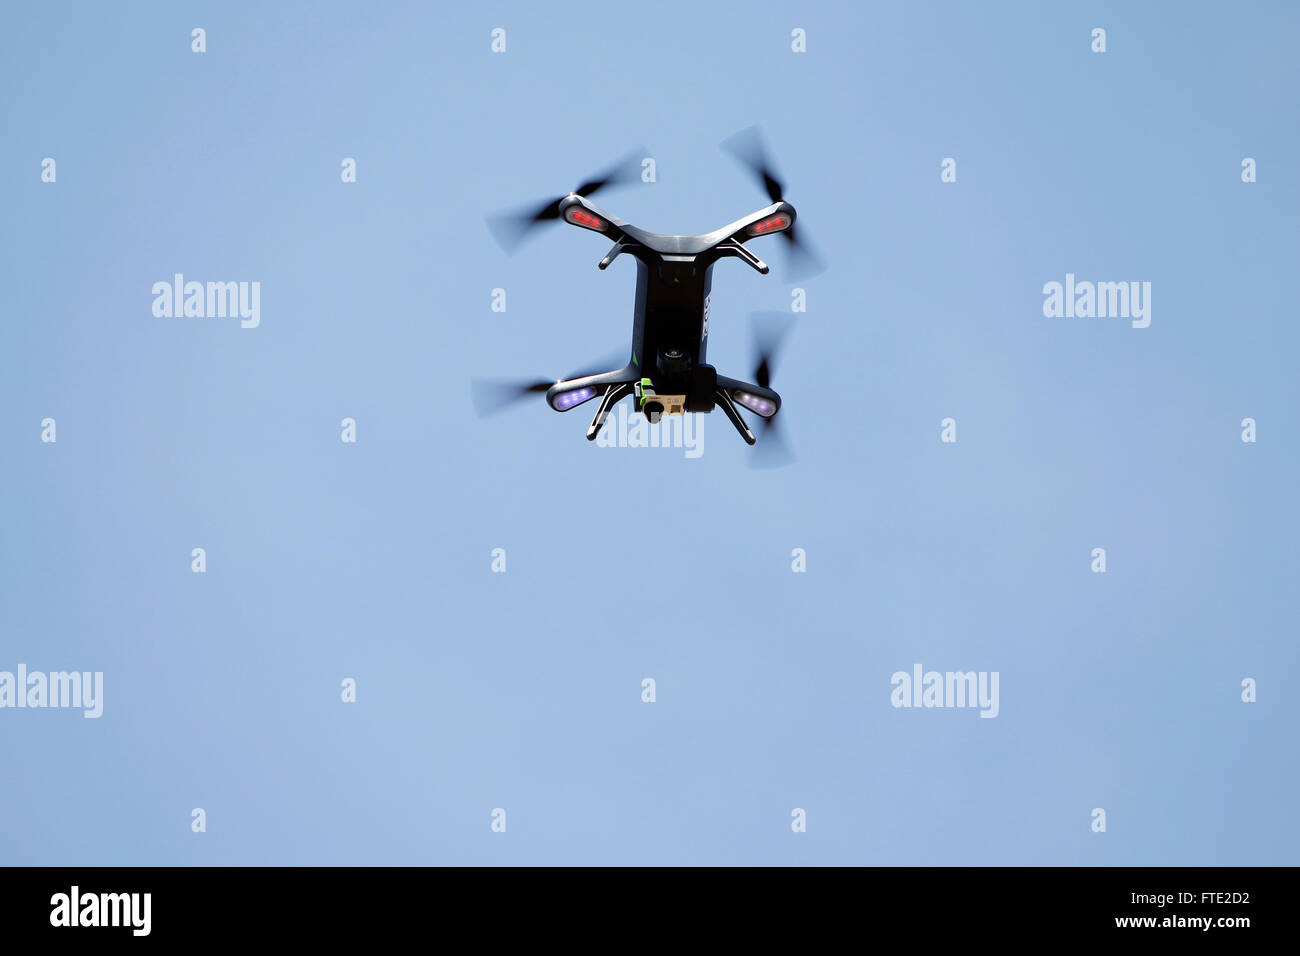 A drone quadcopter in flight. - Stock Image